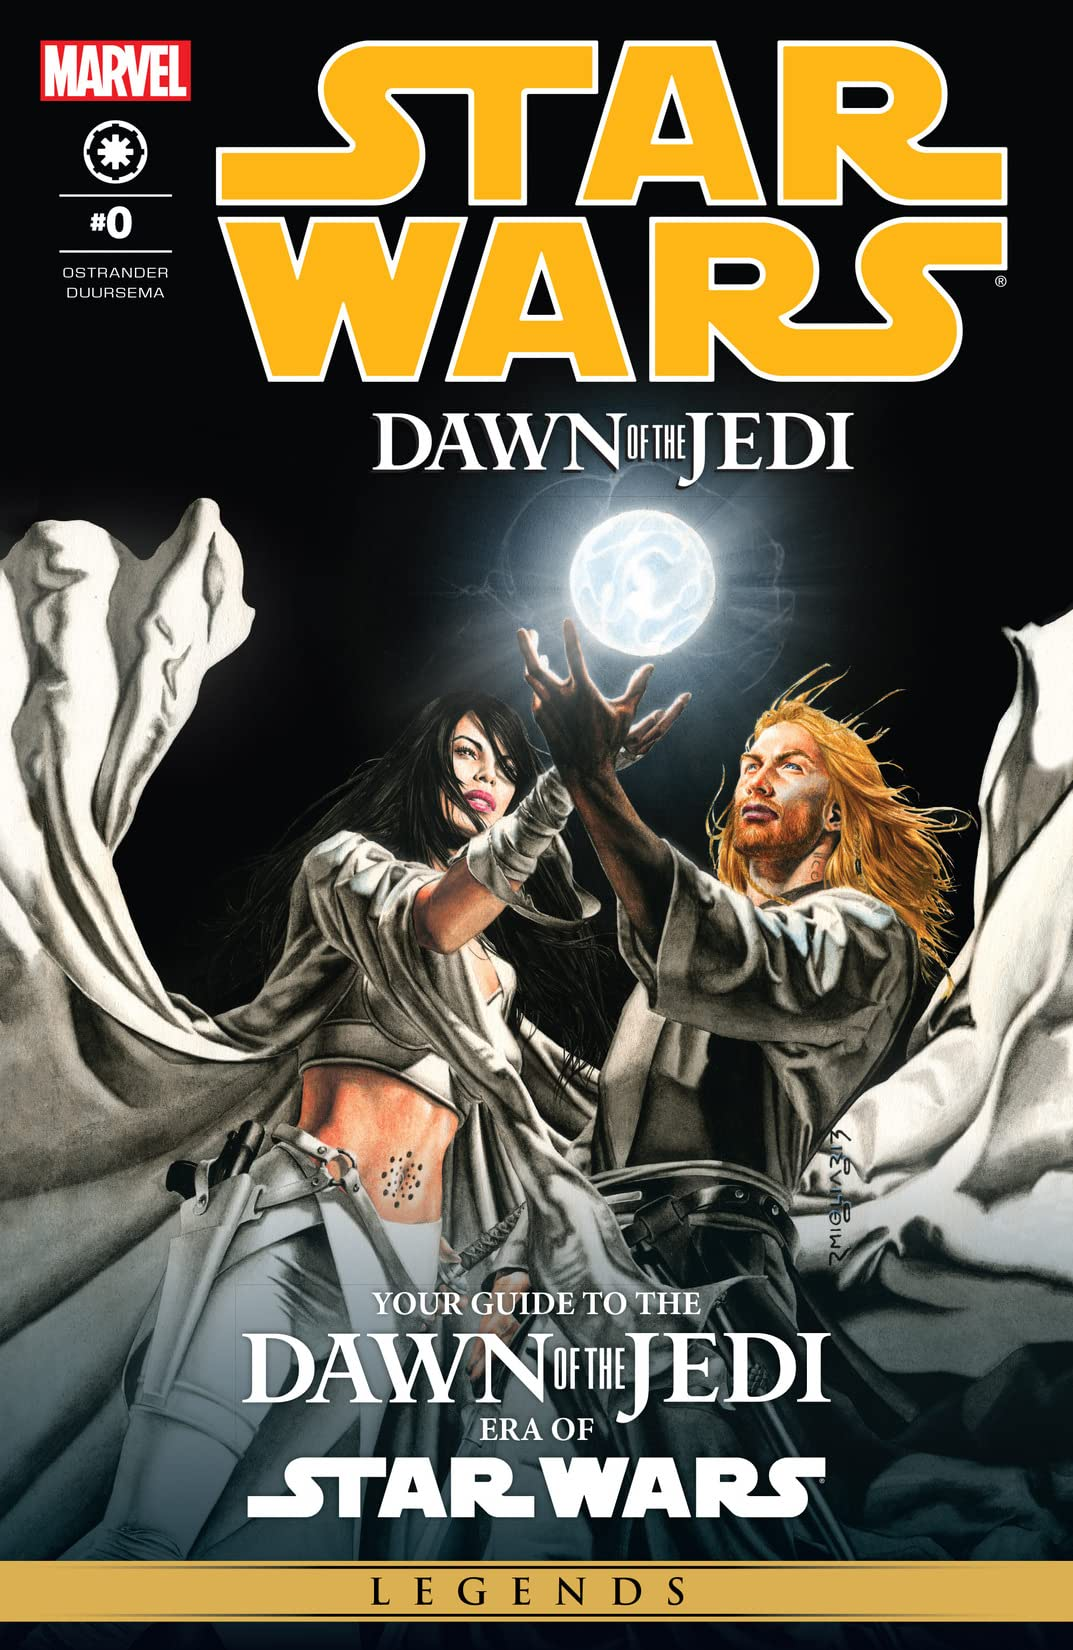 Star Wars: Dawn of the Jedi (2012) #0 - Comics by comiXology